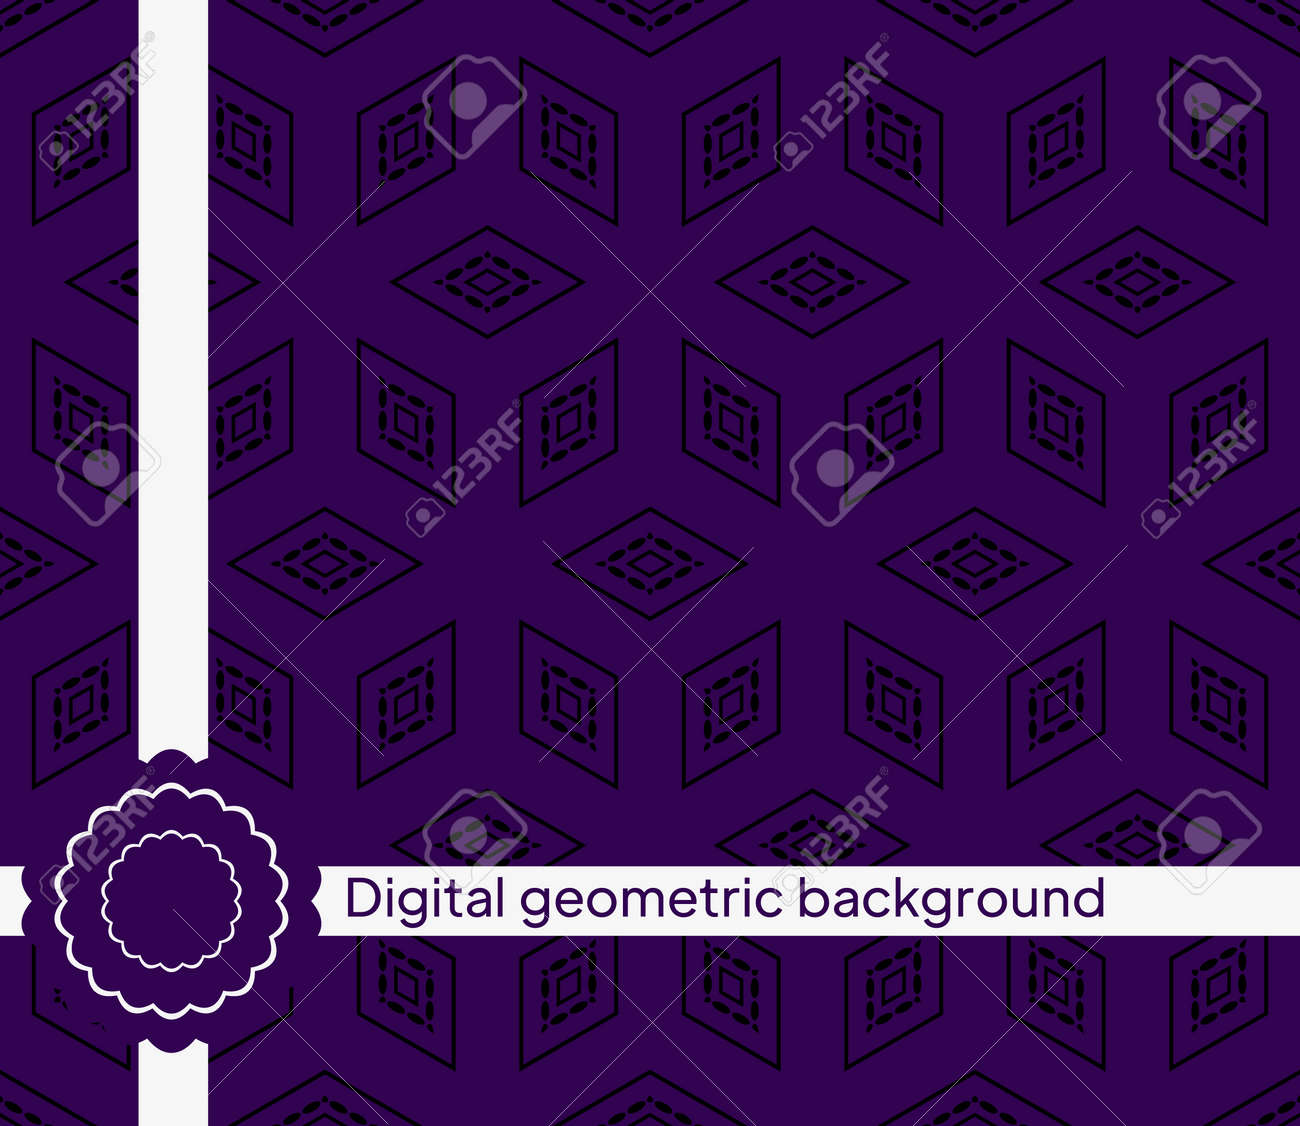 The geometric abstract pattern. Seamless vector background. - 167216179